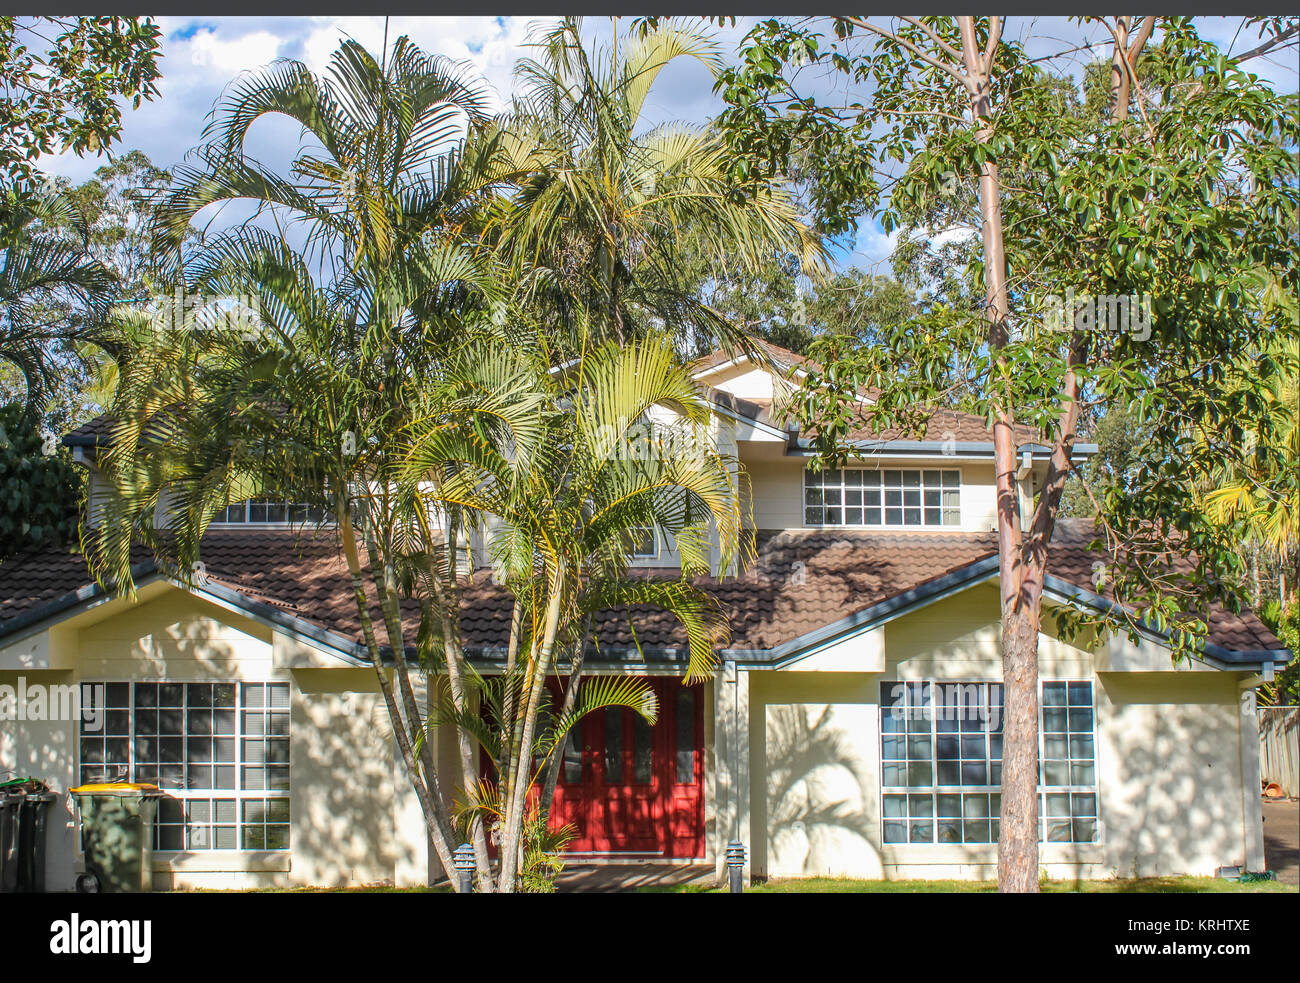 Typical suburban house outside Brisbane Australia with gum trees and palm trees on a beautiful summer day - Stock Image